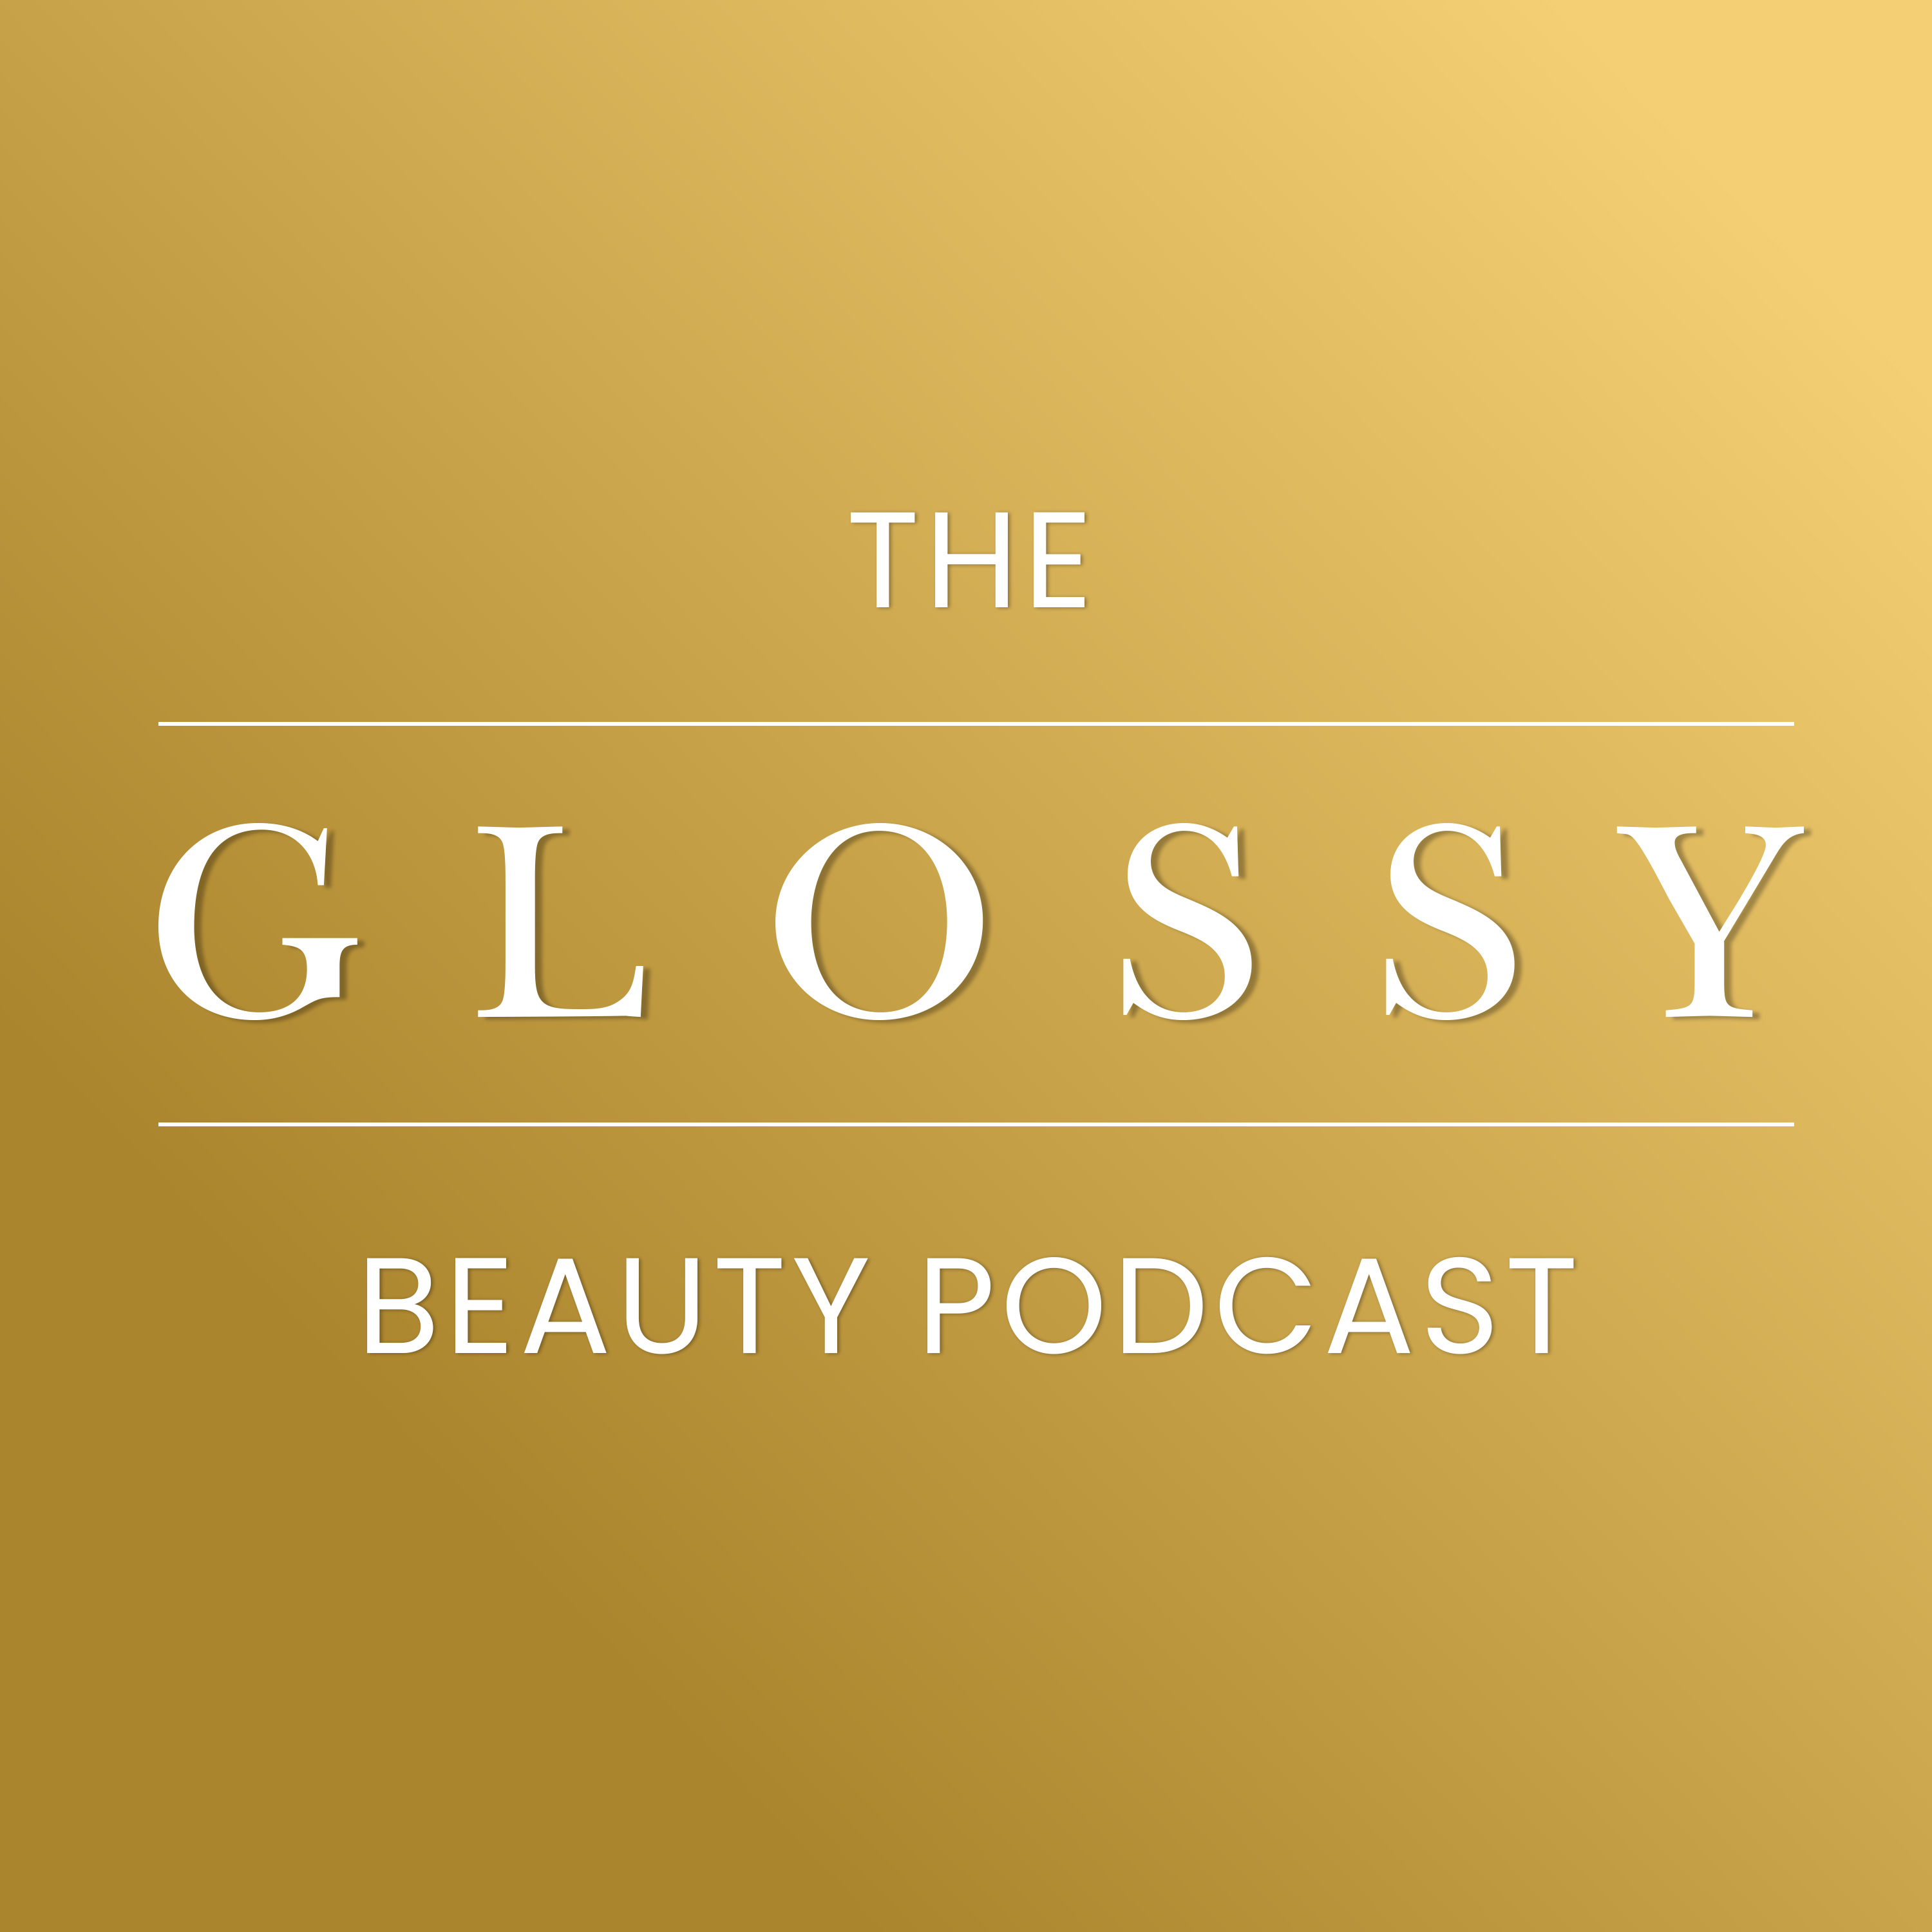 The Glossy Beauty Podcast